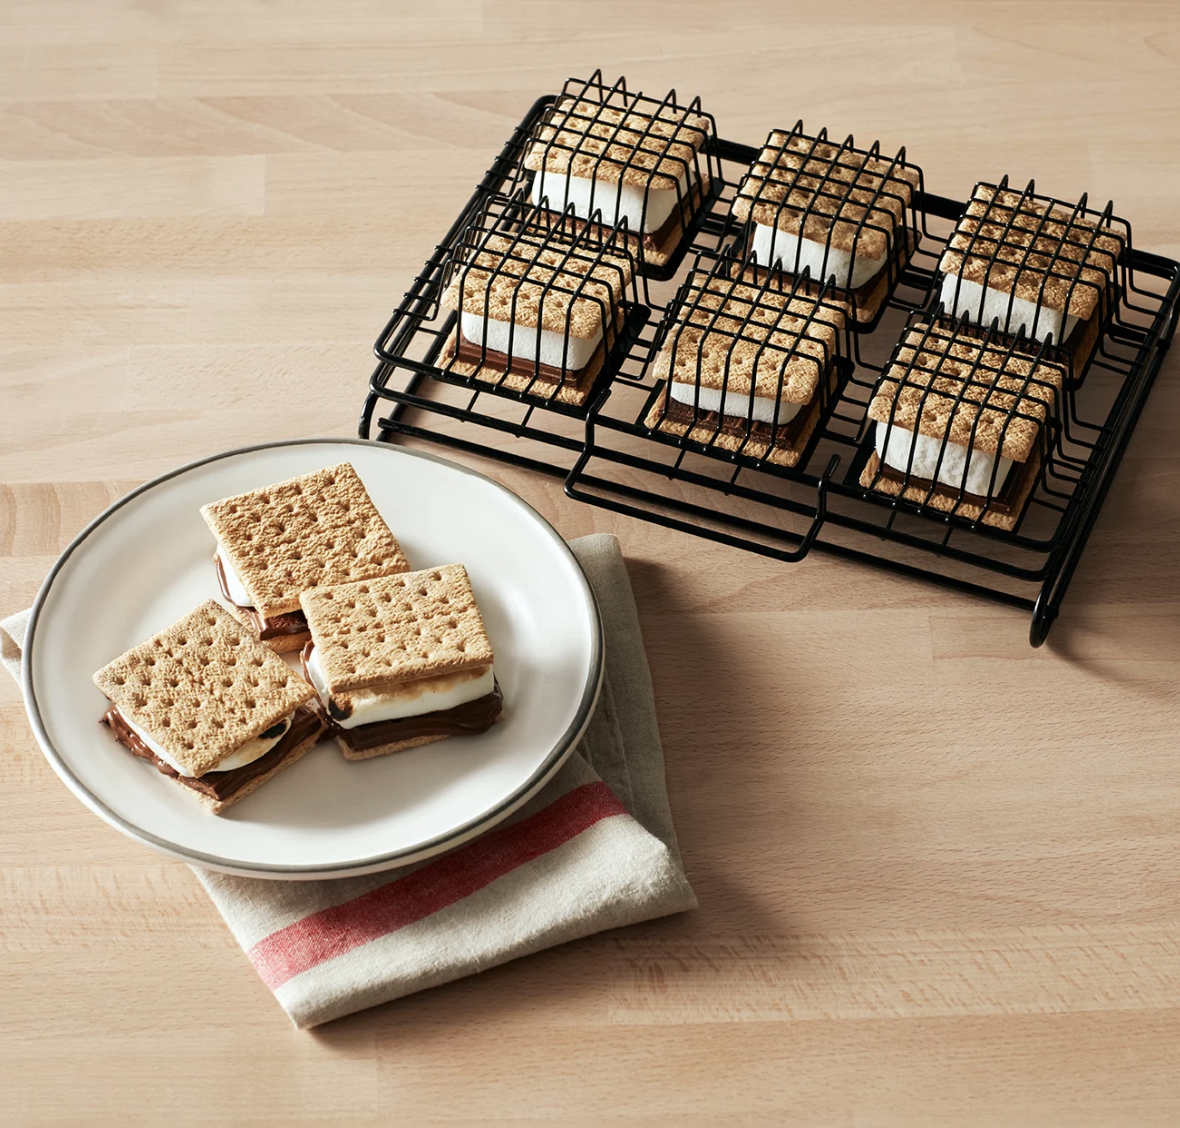 A s'mores grilling rack with six present s'mores in cages next to a plate of cooked s'mores